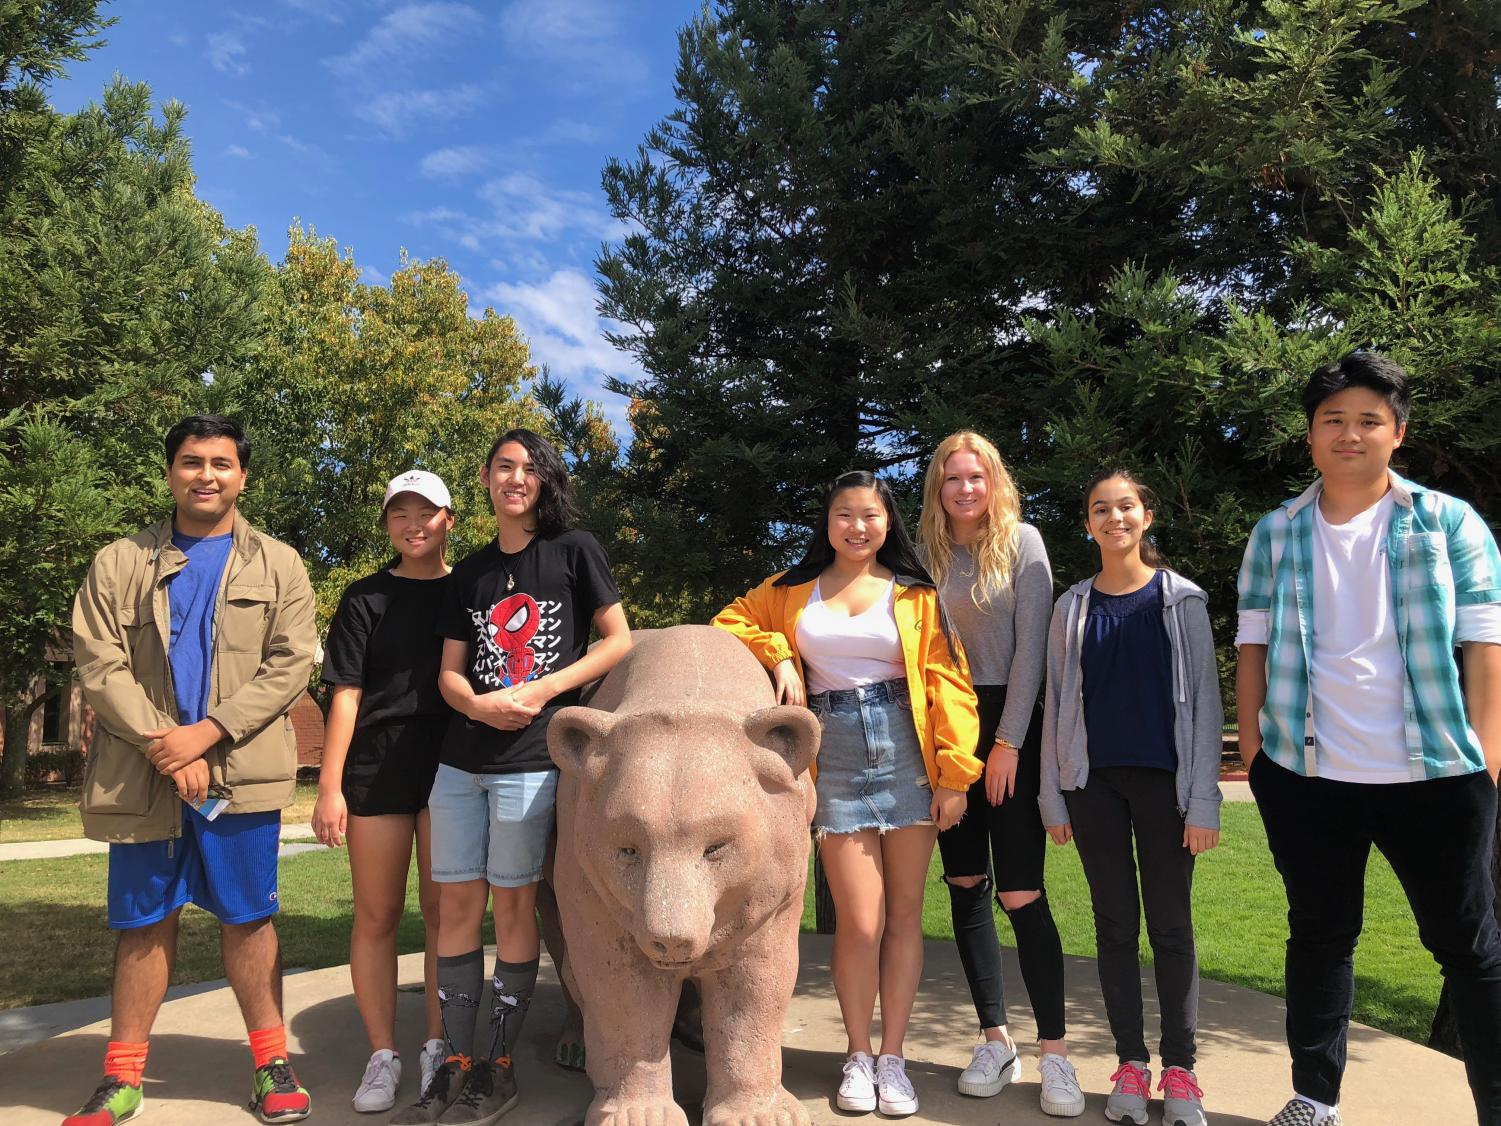 Seven Granite Bay High students have been named semifinalists in the National Merit Scholarship competition. They are, left to right, Aditya Mishra, Yena Jang, Joshua Tateishi, Vivian Xia, Emily Hansen, Julie Lynch and Andrew Yung.